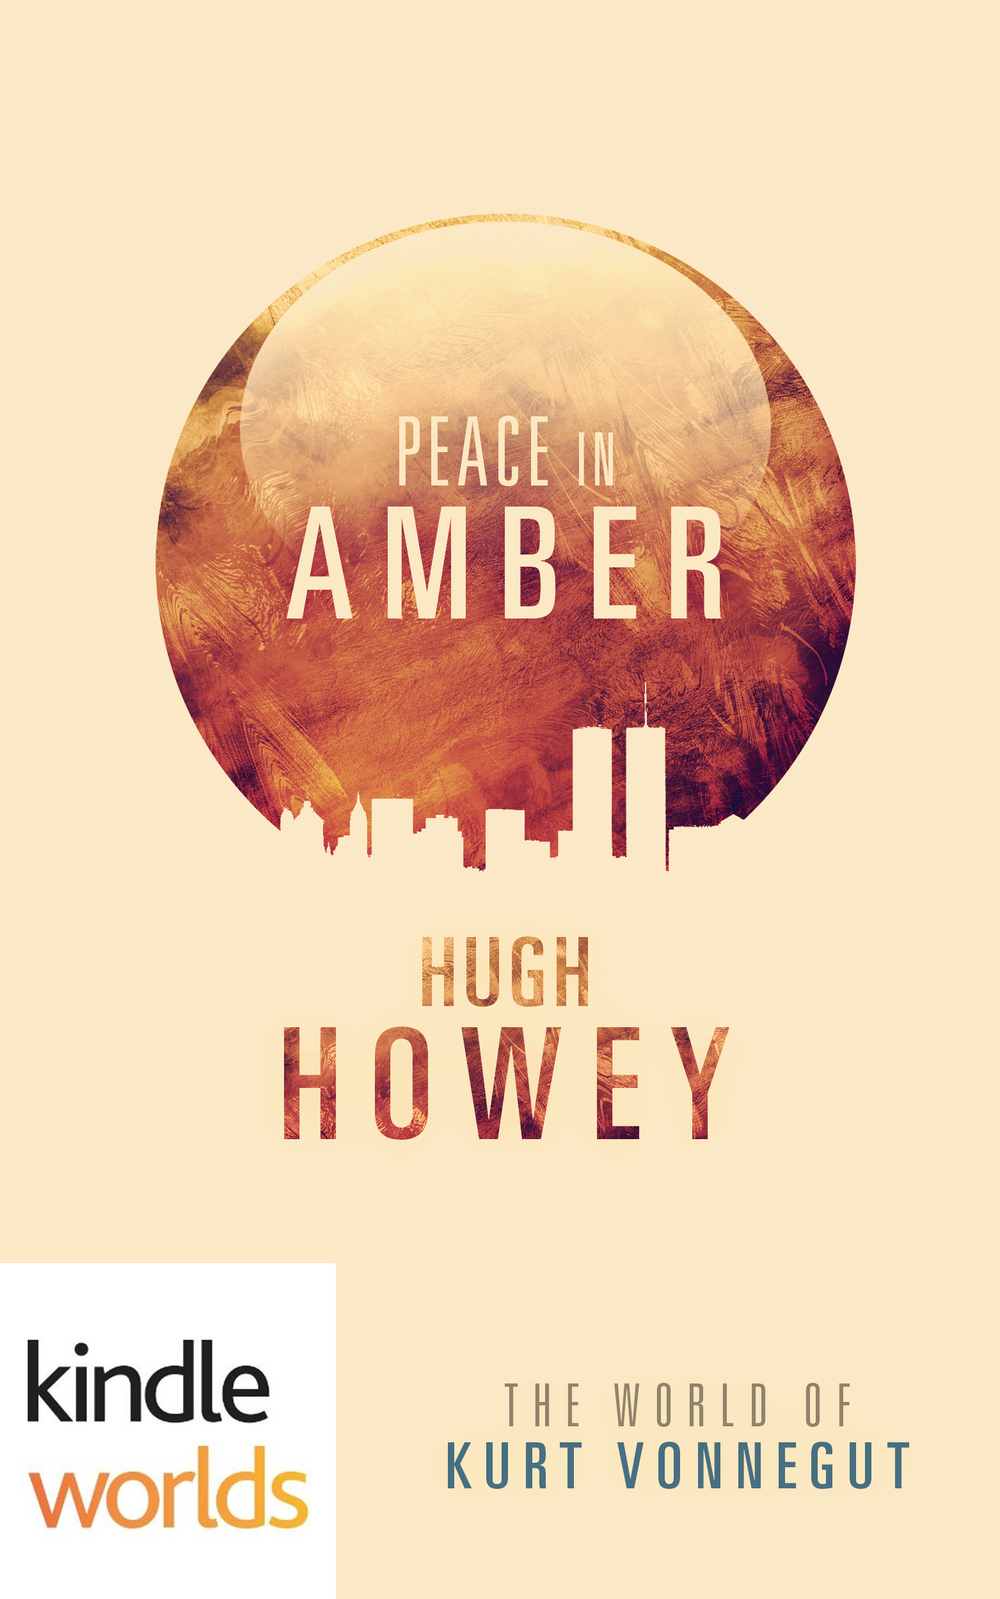 Peace in Amber  is Hugh Howey's first foray into Kindle Worlds.